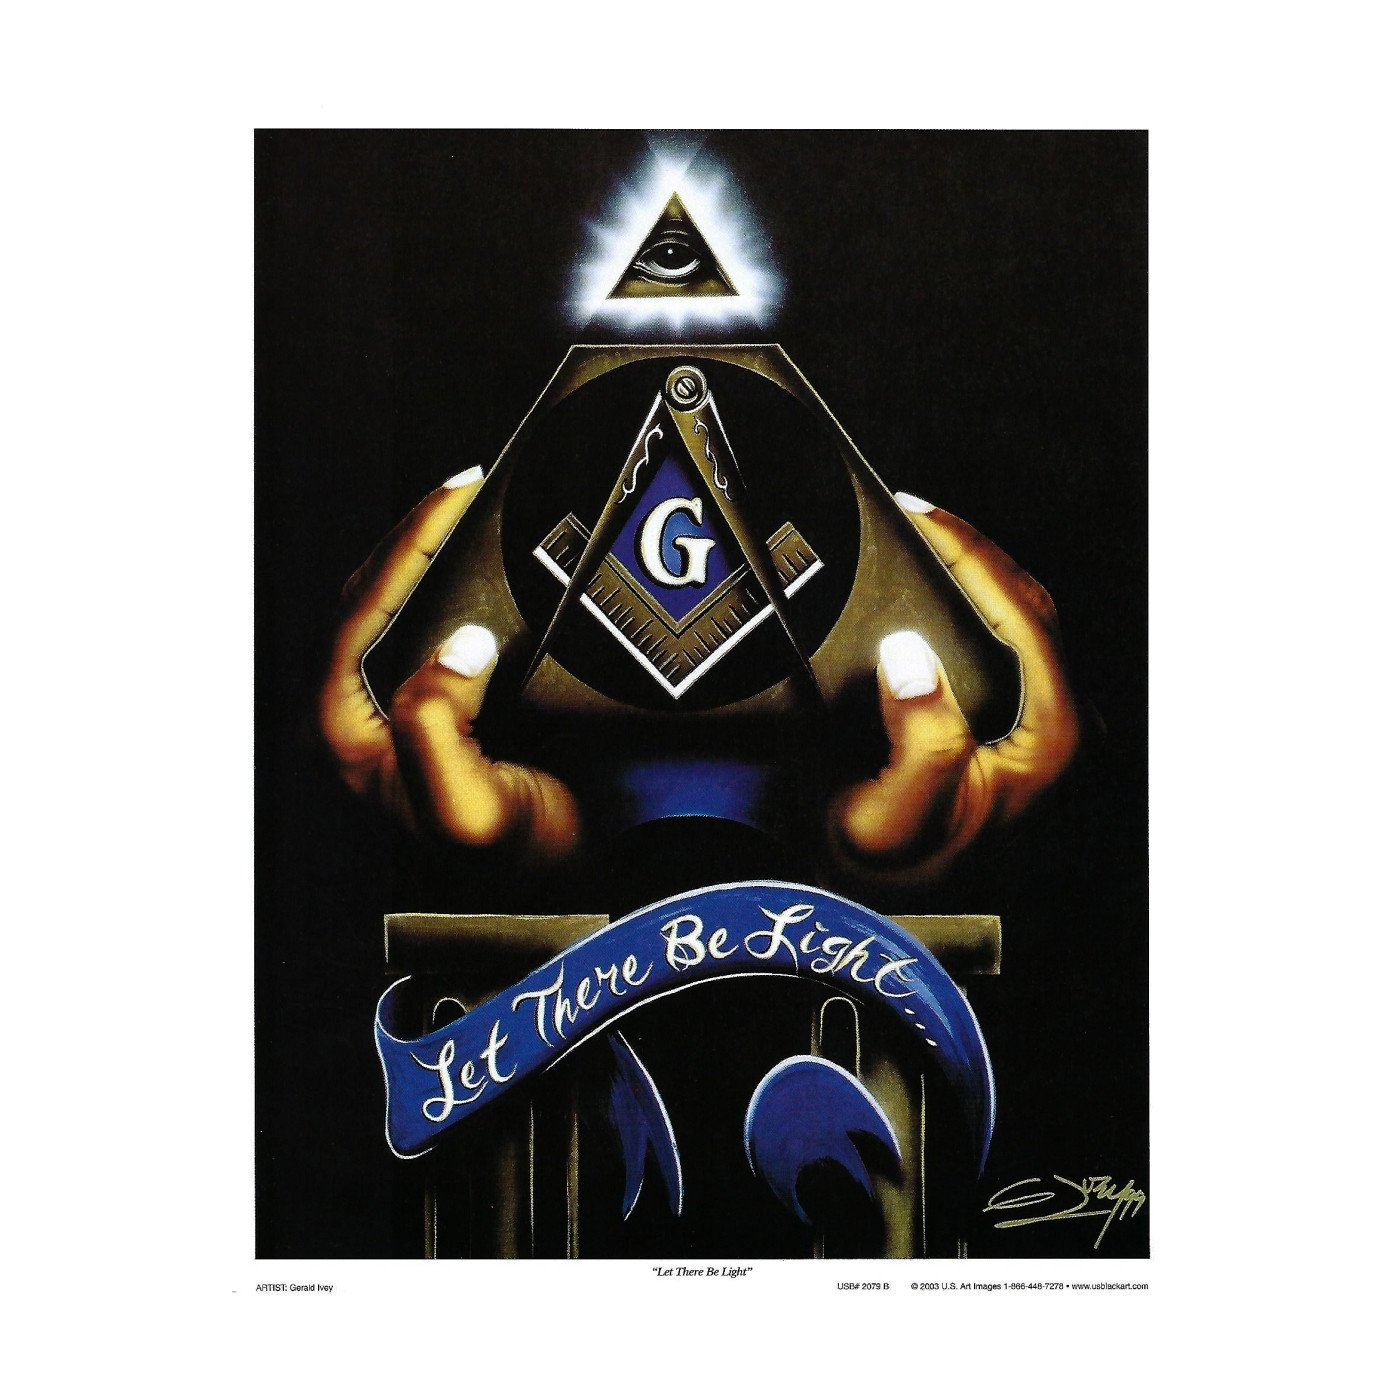 Insights: Let There Be Light (Freemasonry) by Gerald Ivey